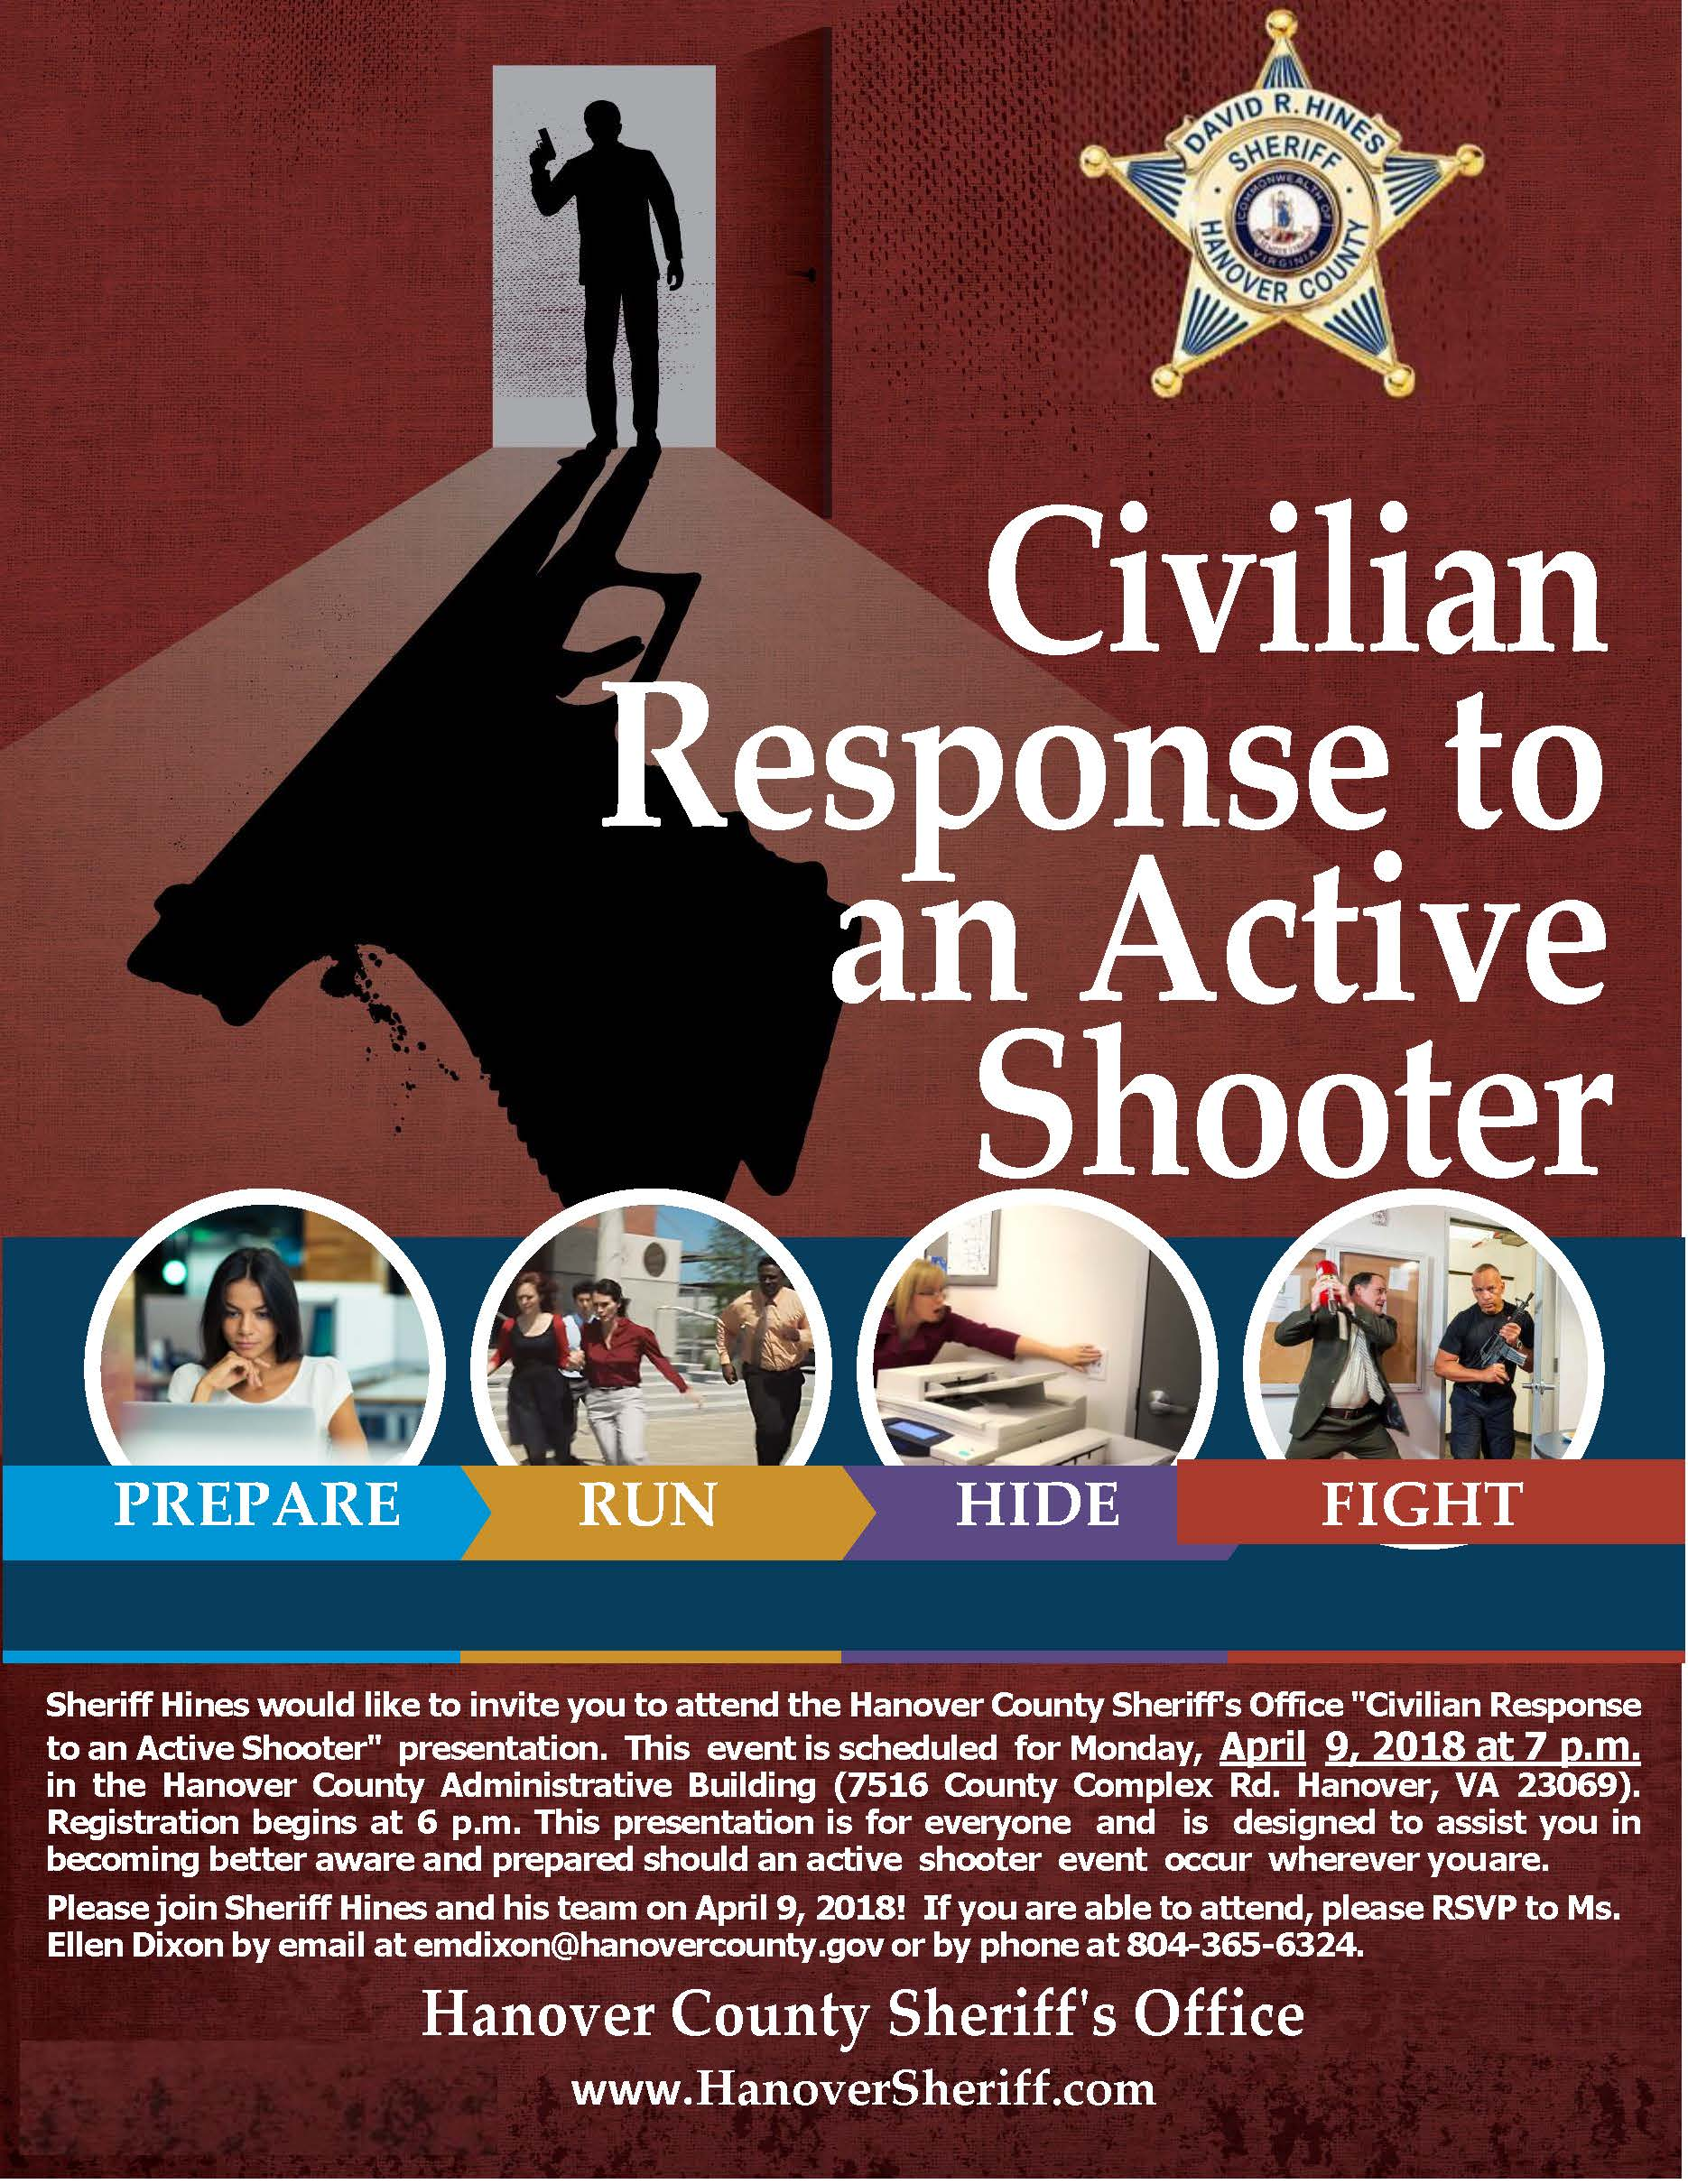 Flyer_Civilian Response to AnActiveShooter April 9 18